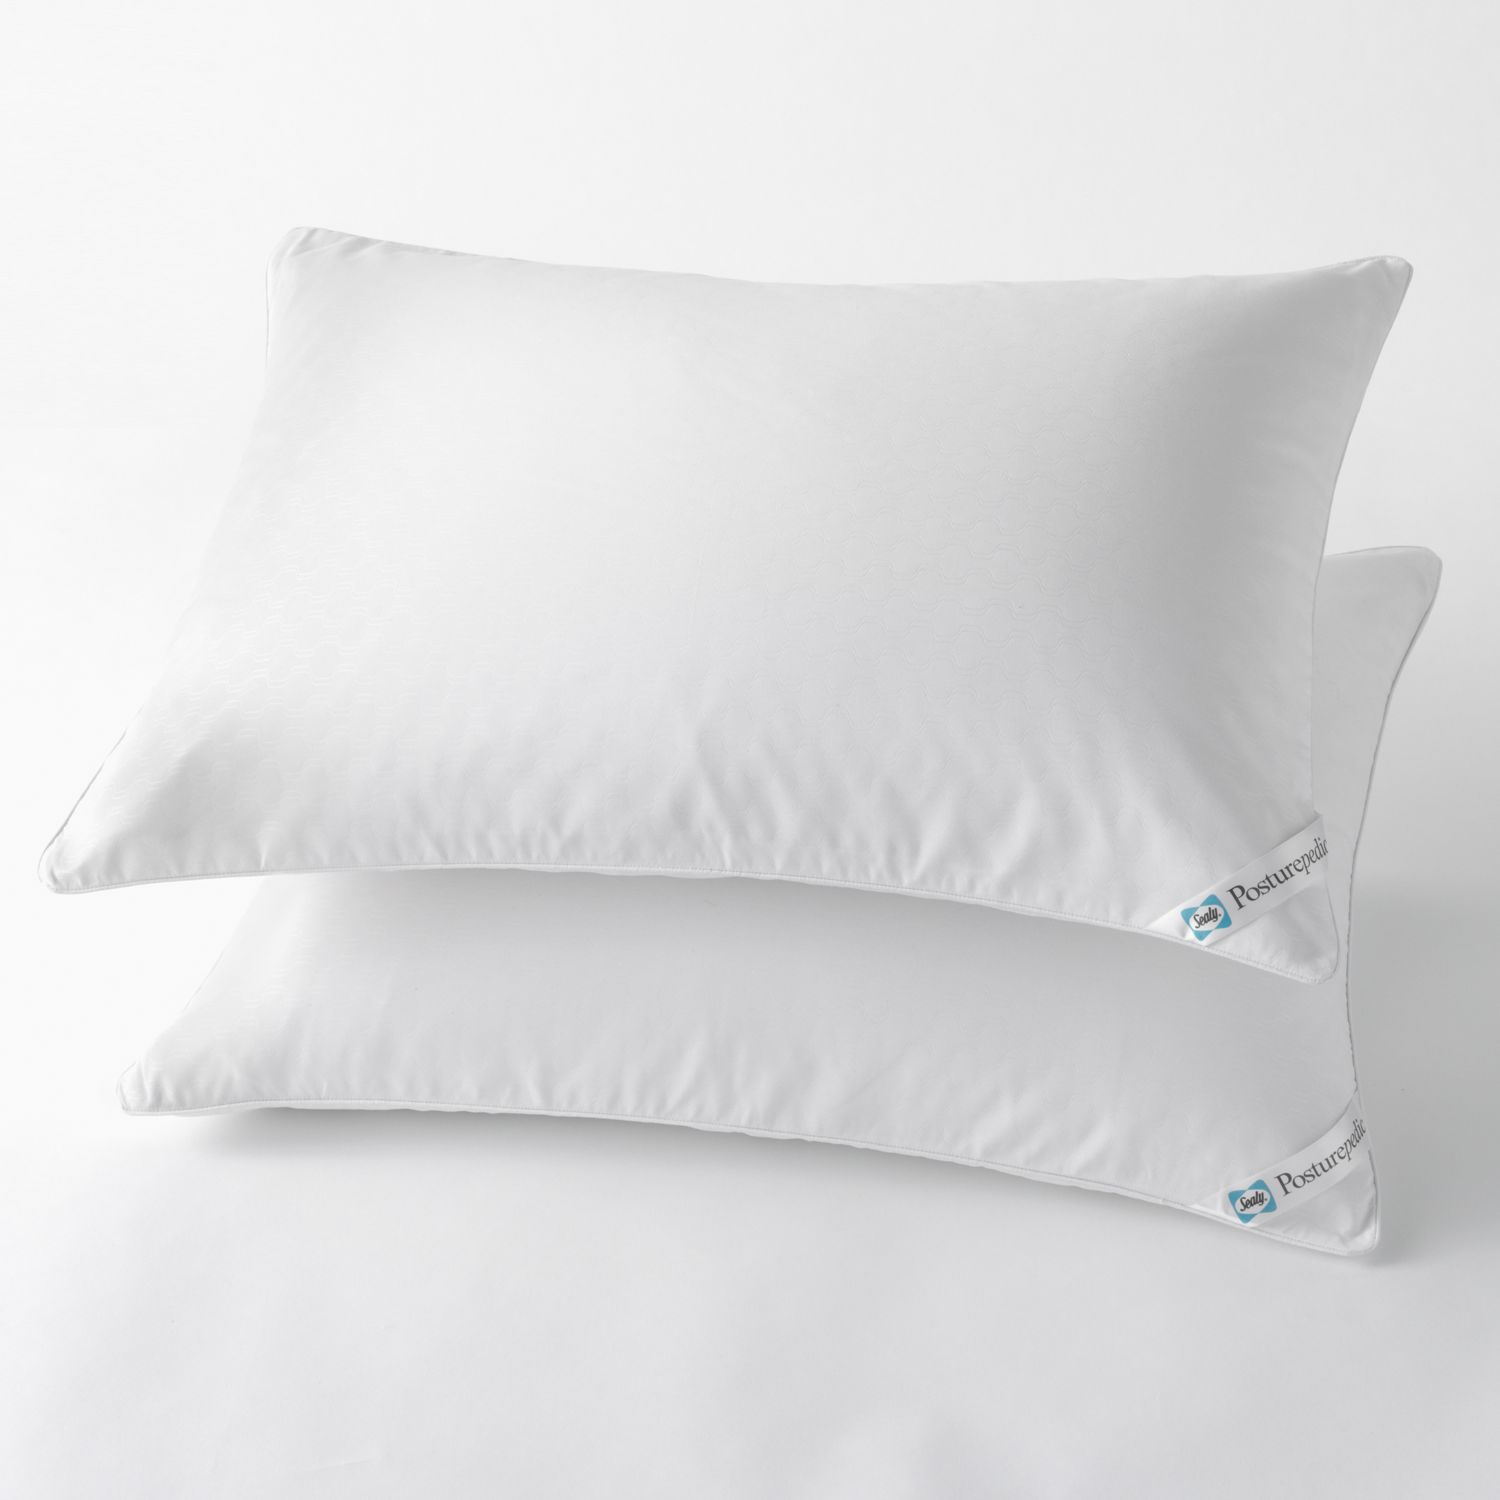 sealy allergy protection 2 pk pillow protectors